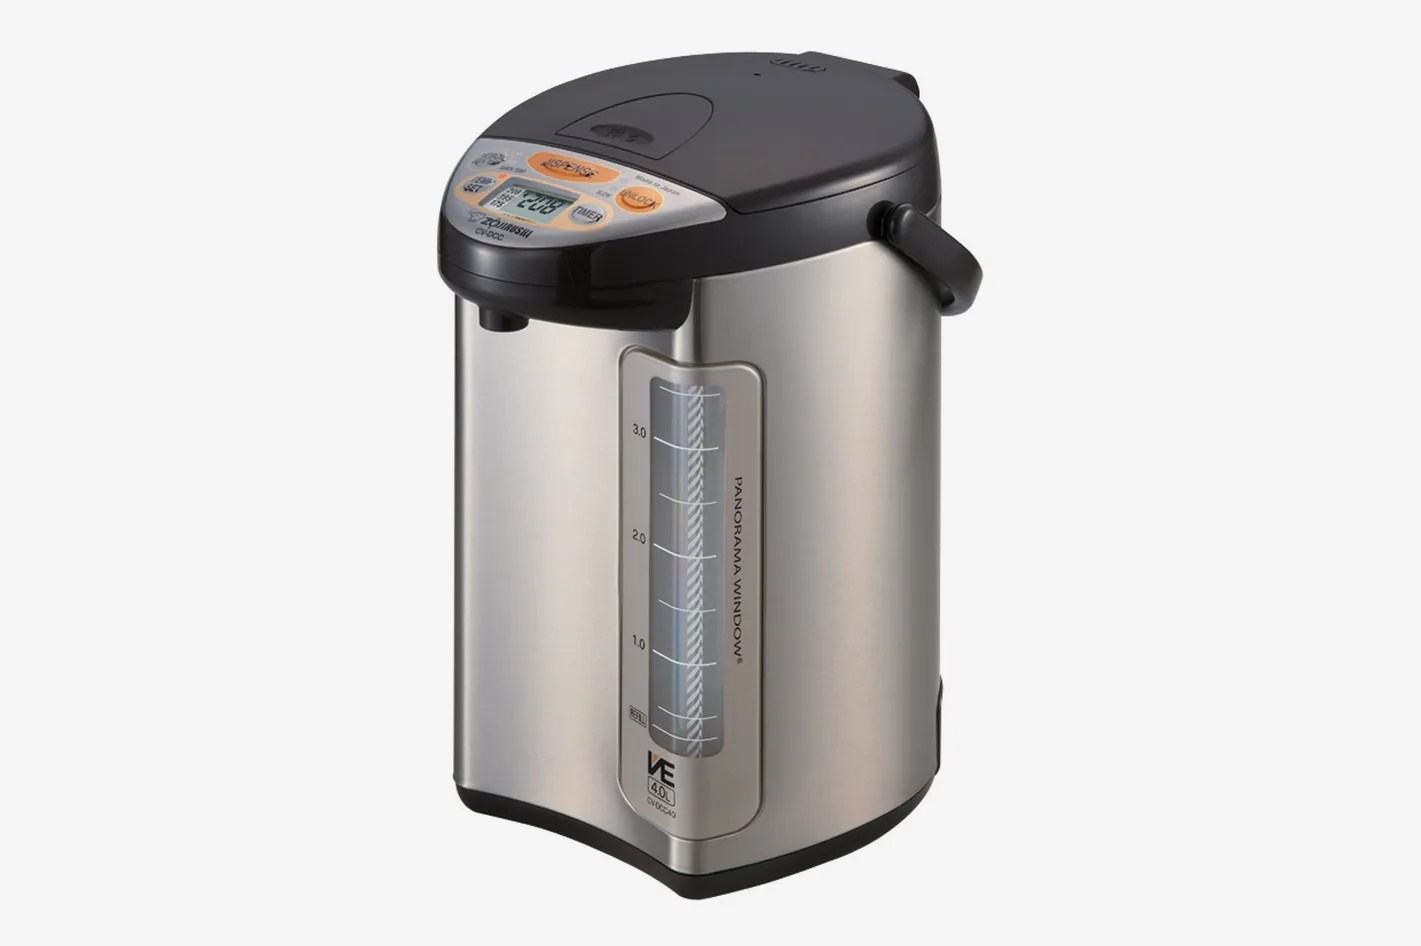 Mini Water Dispenser Zojirushi America Corporation Cv Dcc40xt Ve Hybrid Water Boiler And Warmer 4 Liter Stainless Dark Brown